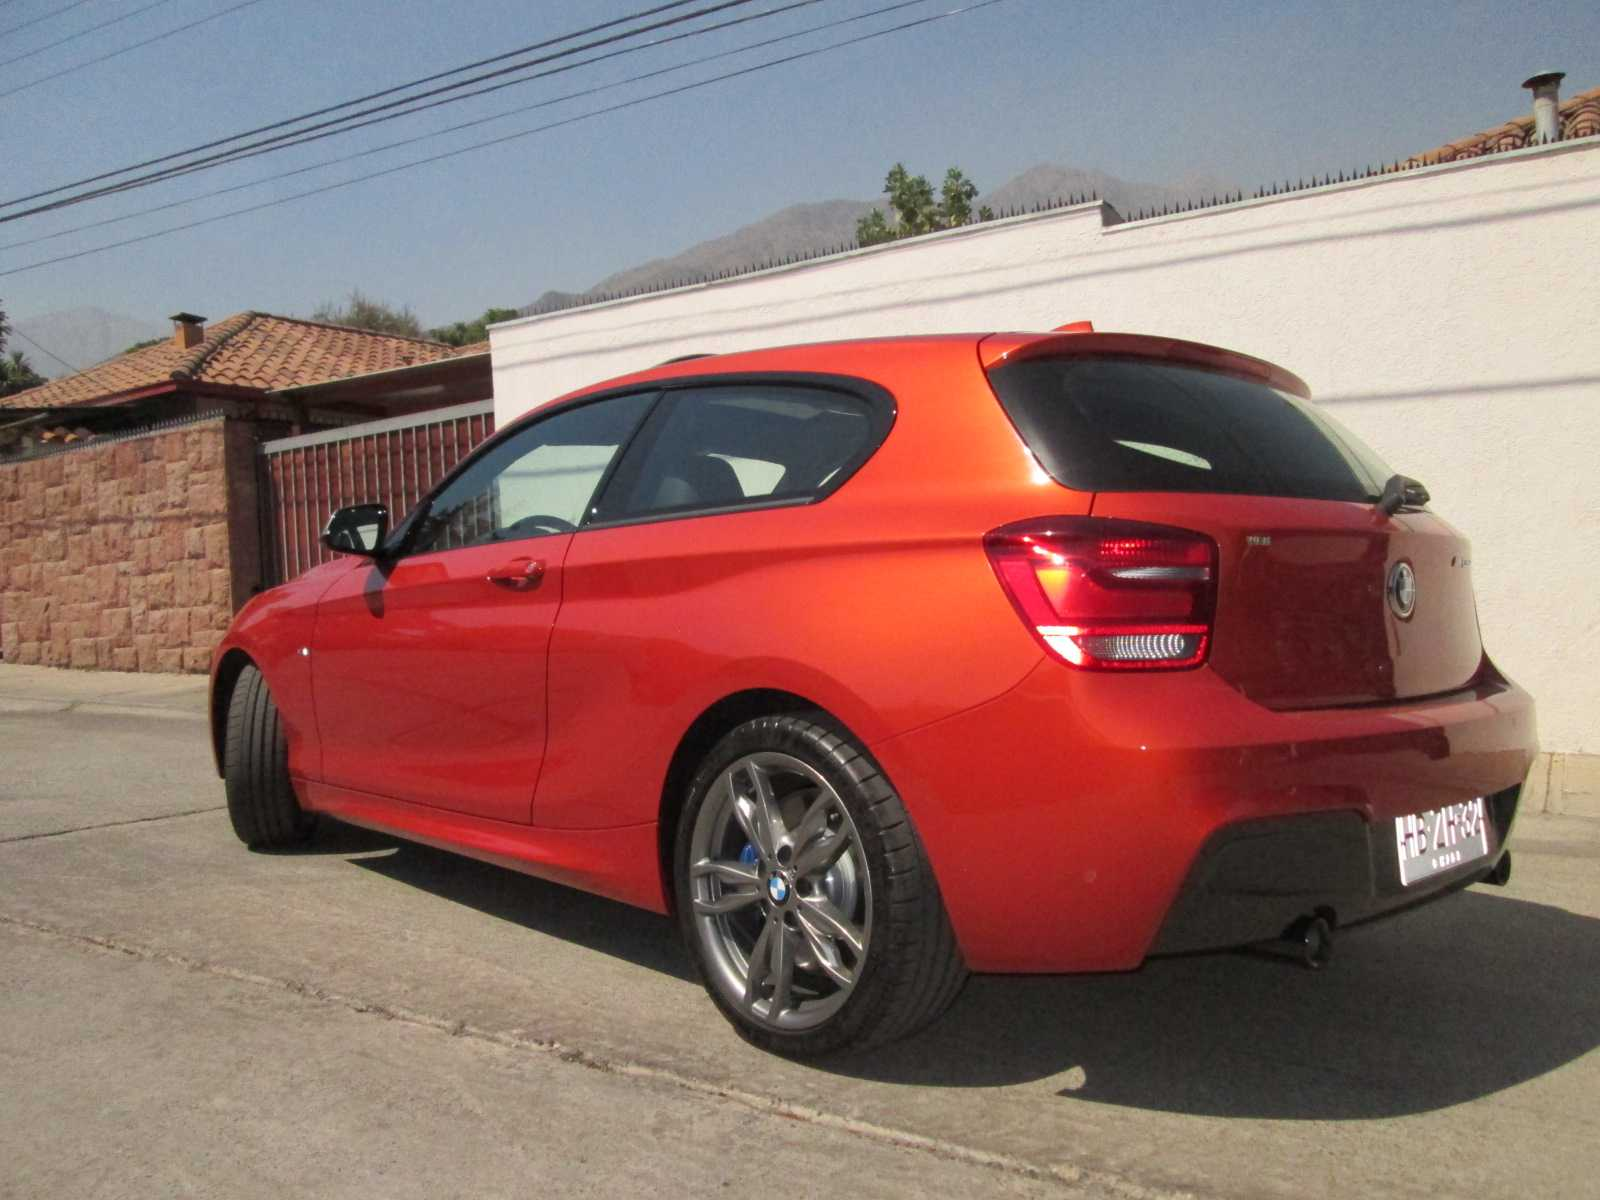 bmw serie 1 m135i 320 cv 8at 2015 frente a frente con la bestia rutamotor. Black Bedroom Furniture Sets. Home Design Ideas